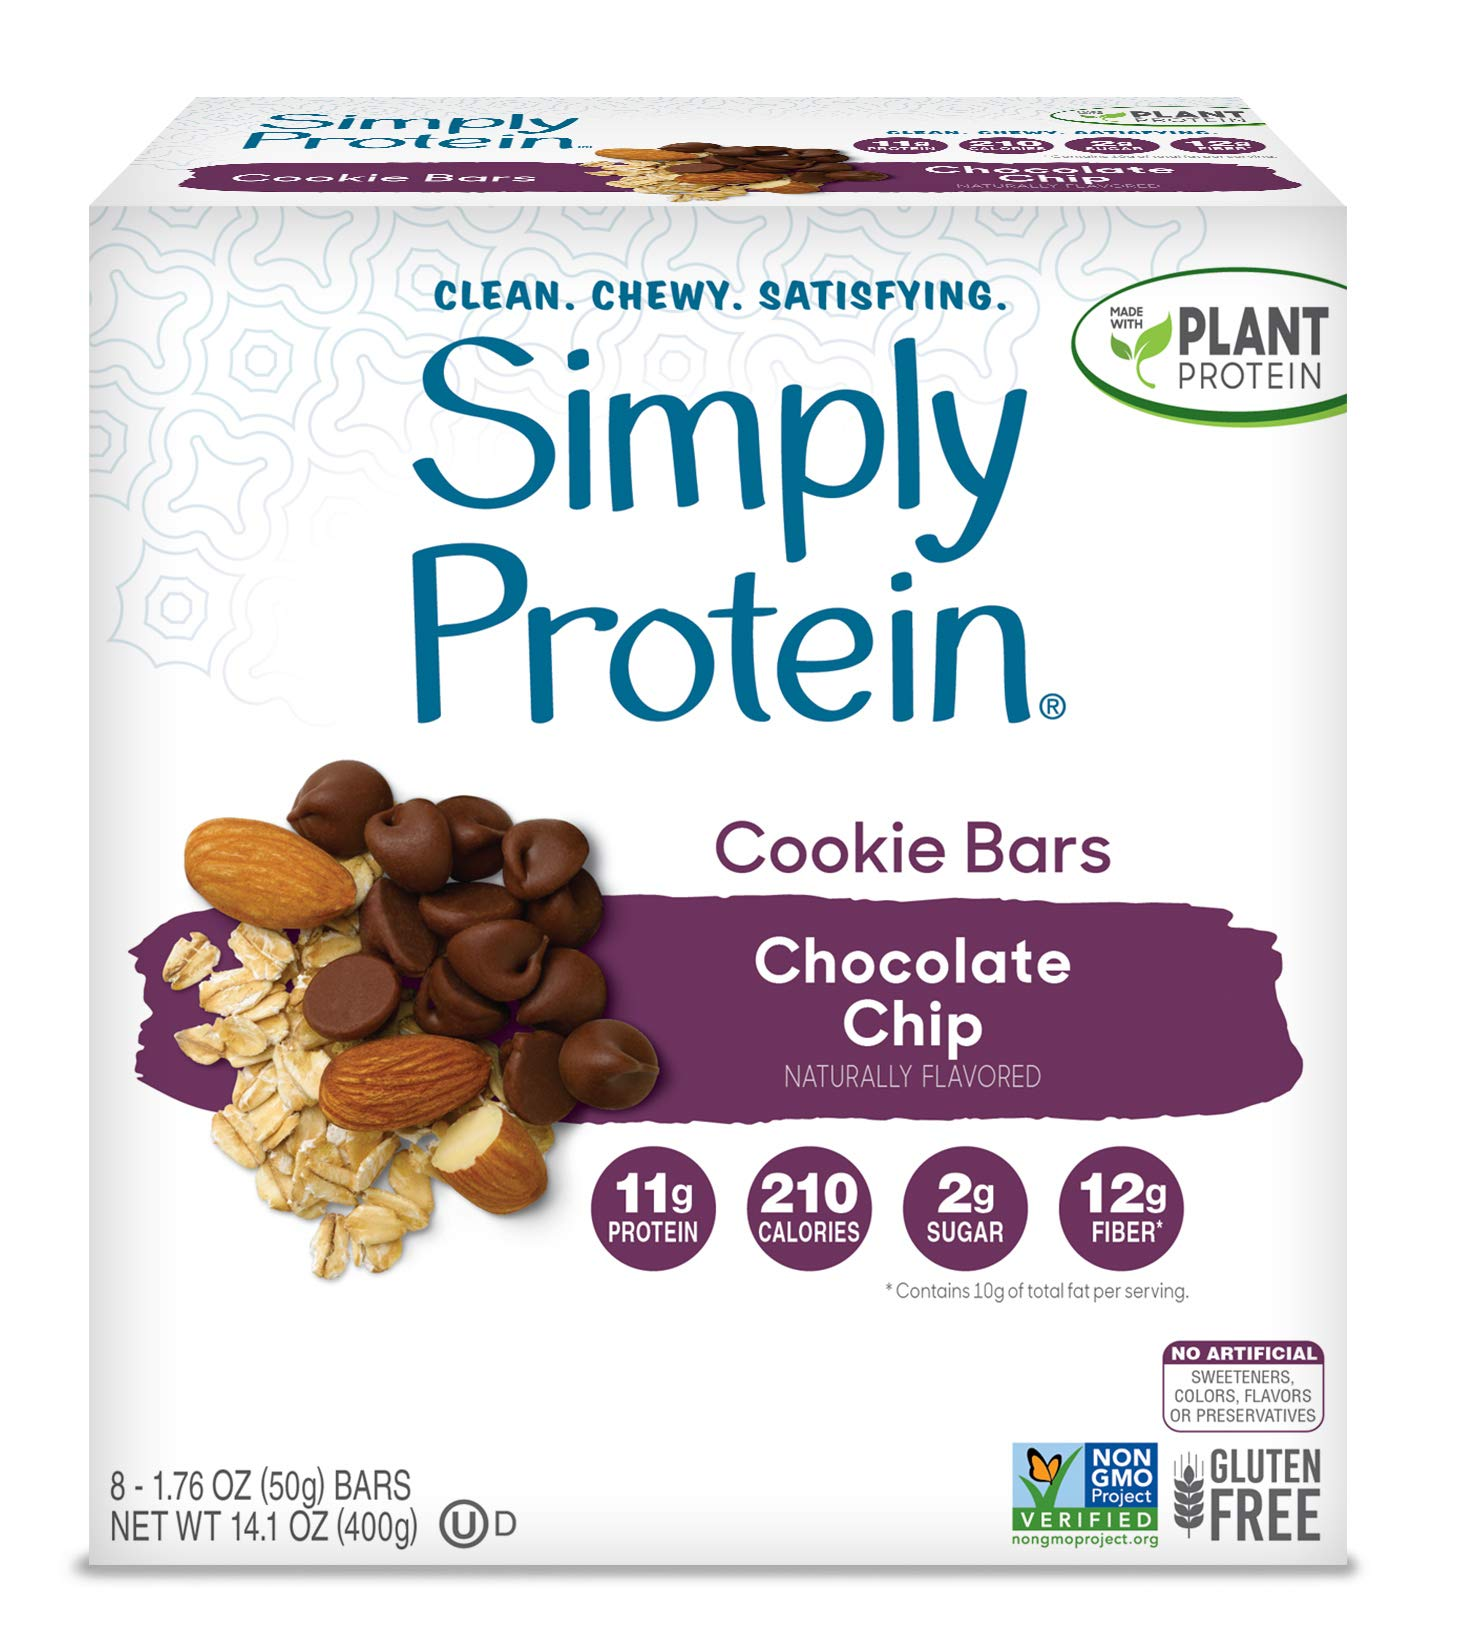 SimplyProtein Cookie Bars. Clean and Light Crispy Bars with Plant Based Protein. (Chocolate Chip, 8 Pack)